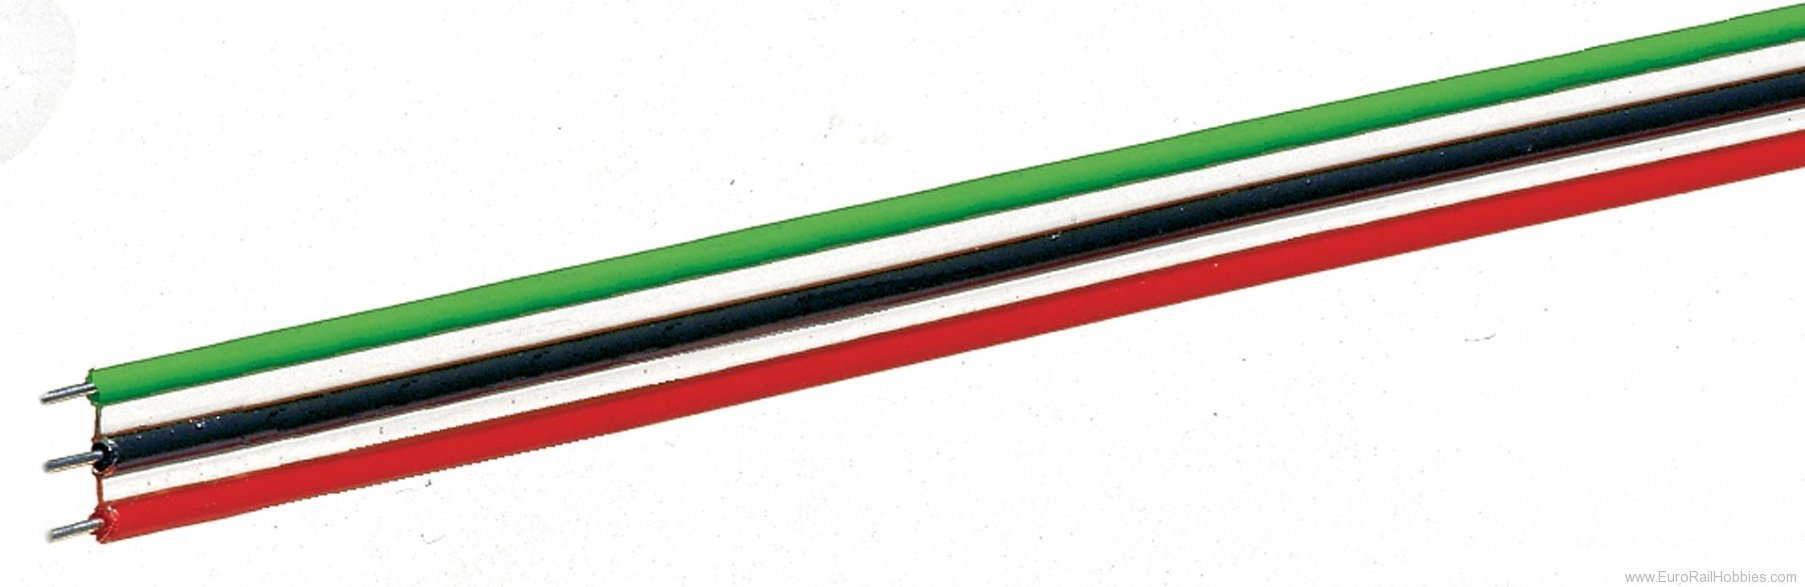 Roco 10623 Flat Cable - 3 strand